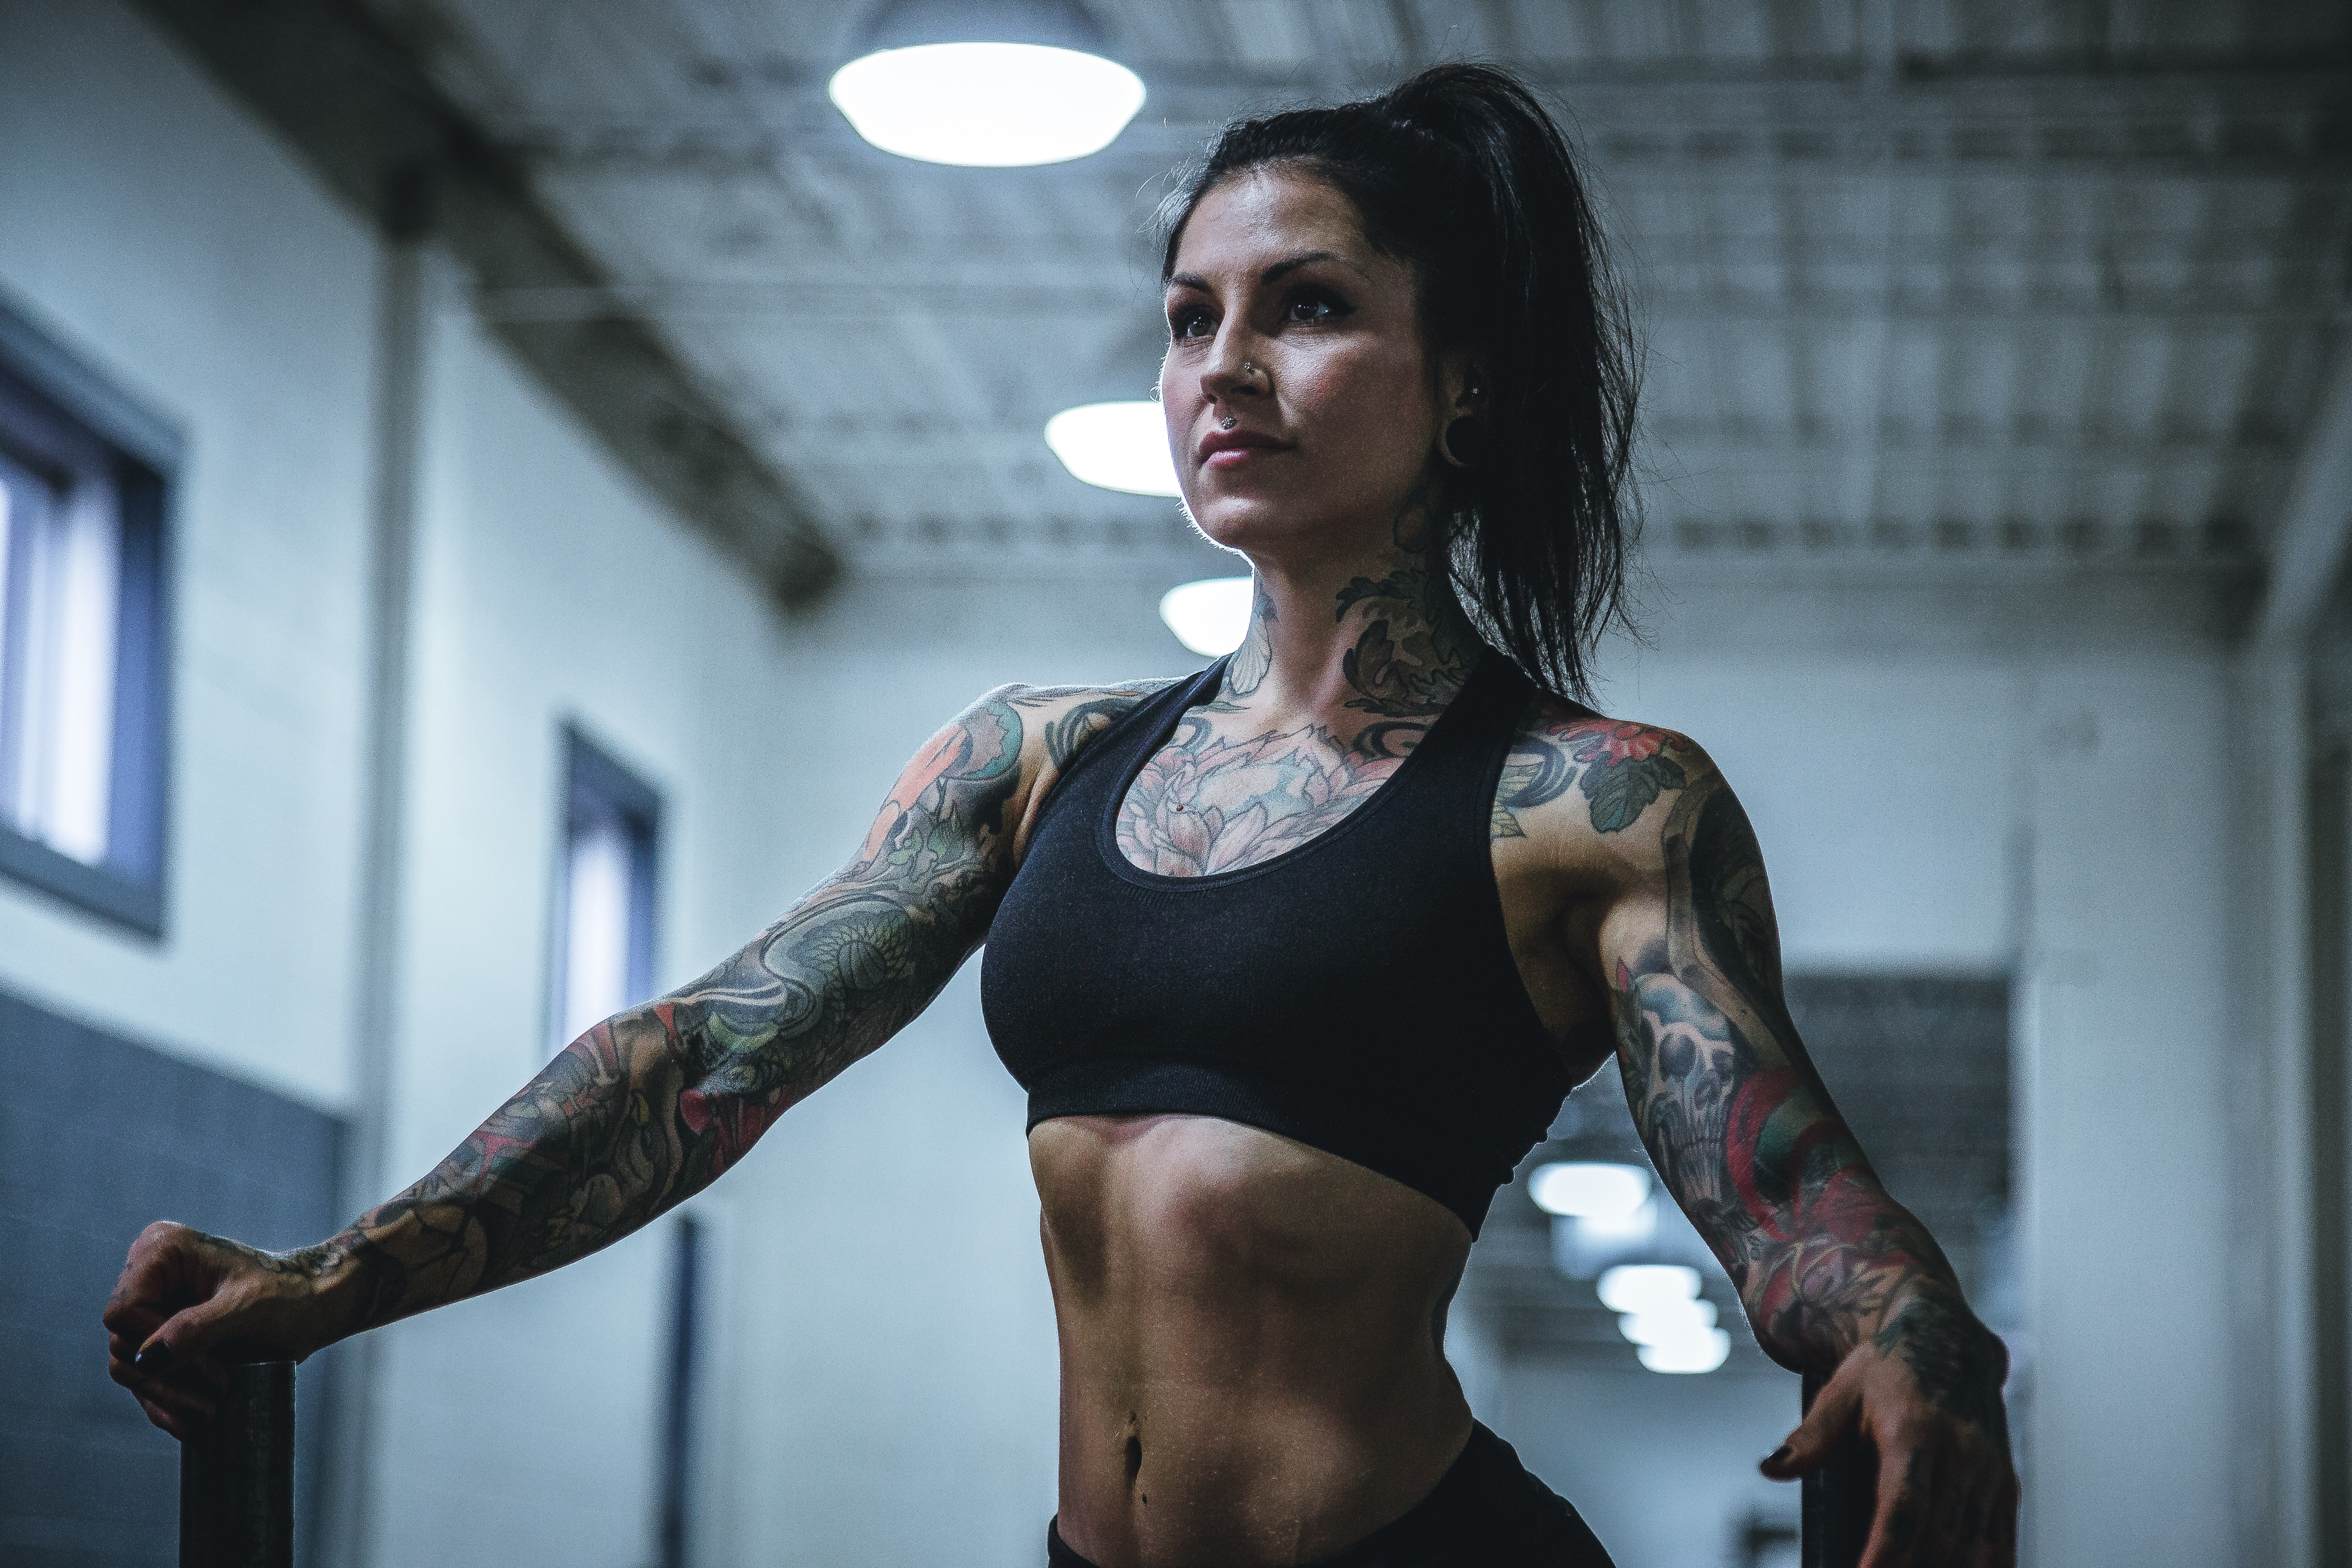 Tattoo Girl Pictures | Download Free Images on Unsplash